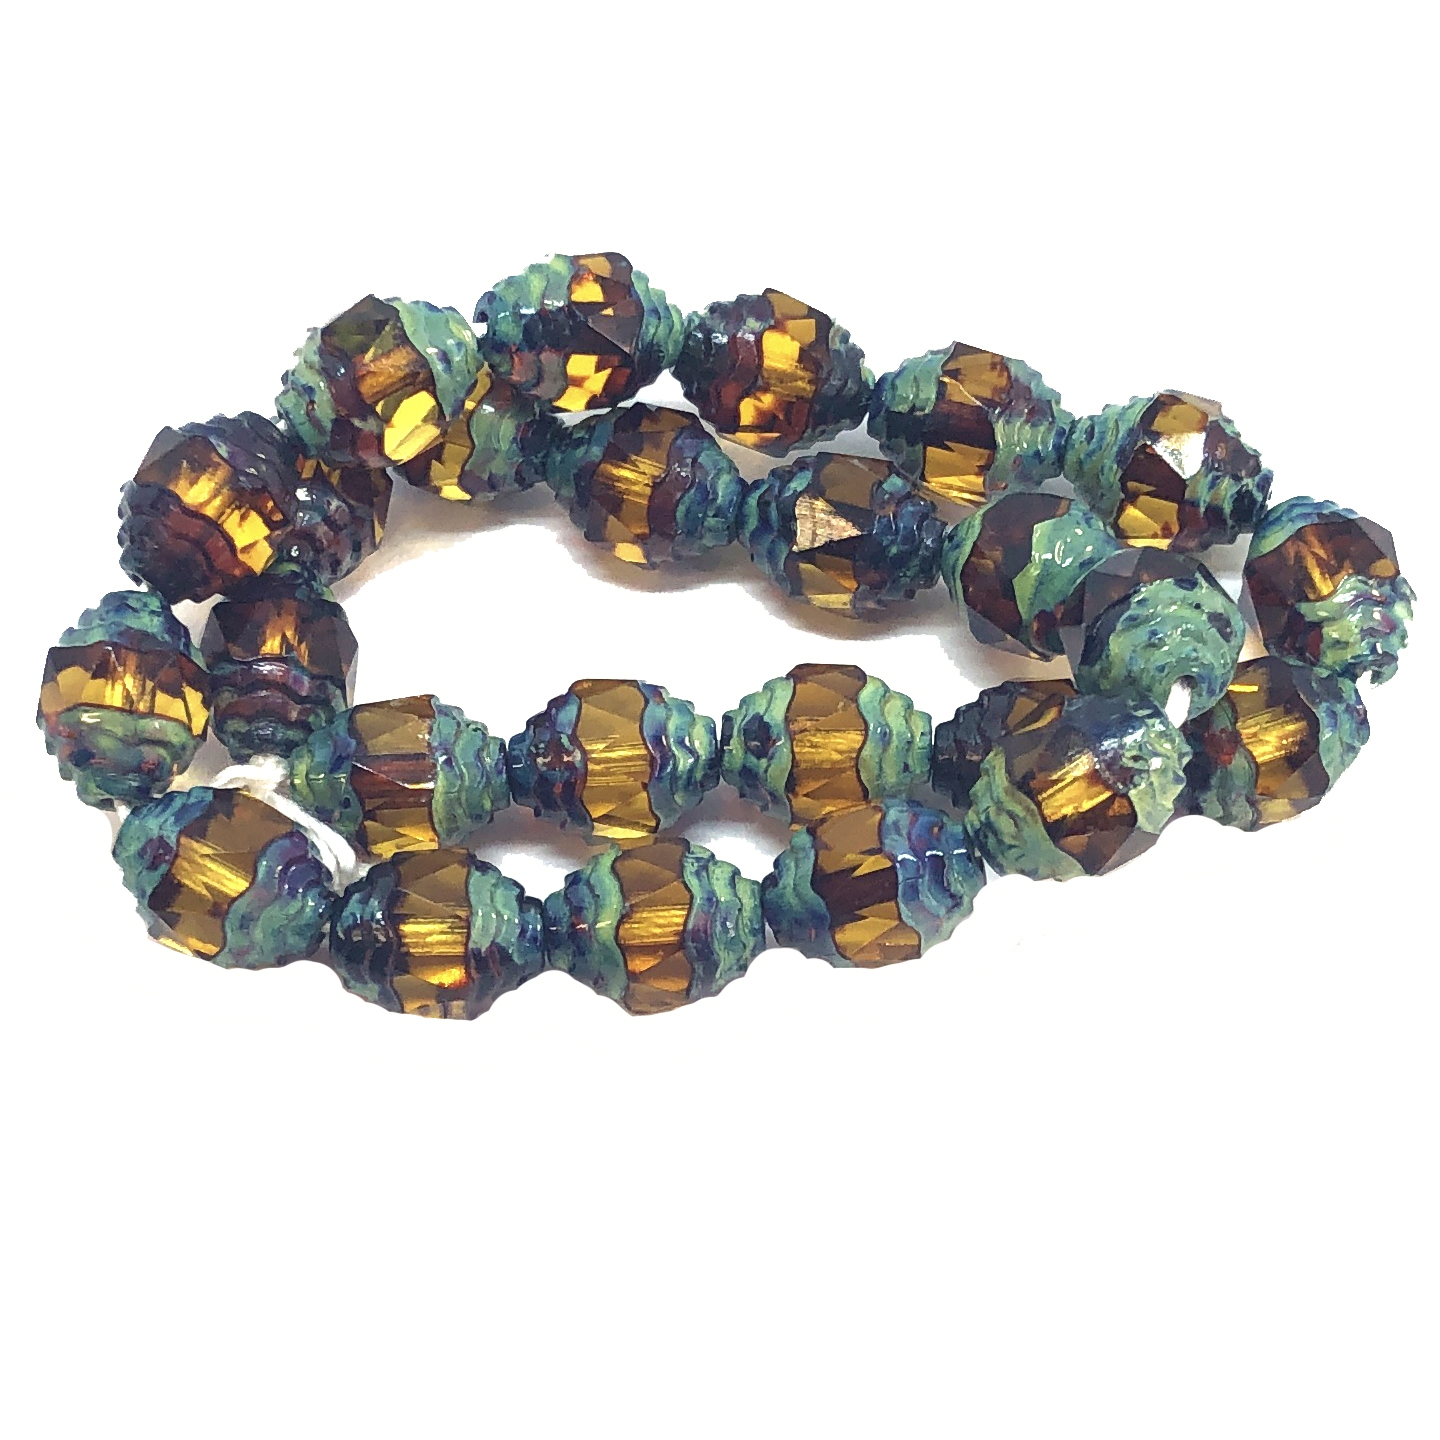 Cathedral Beads, Oval Fancy Glass Beads, Faceted, Topaz Antique, 8x10mm